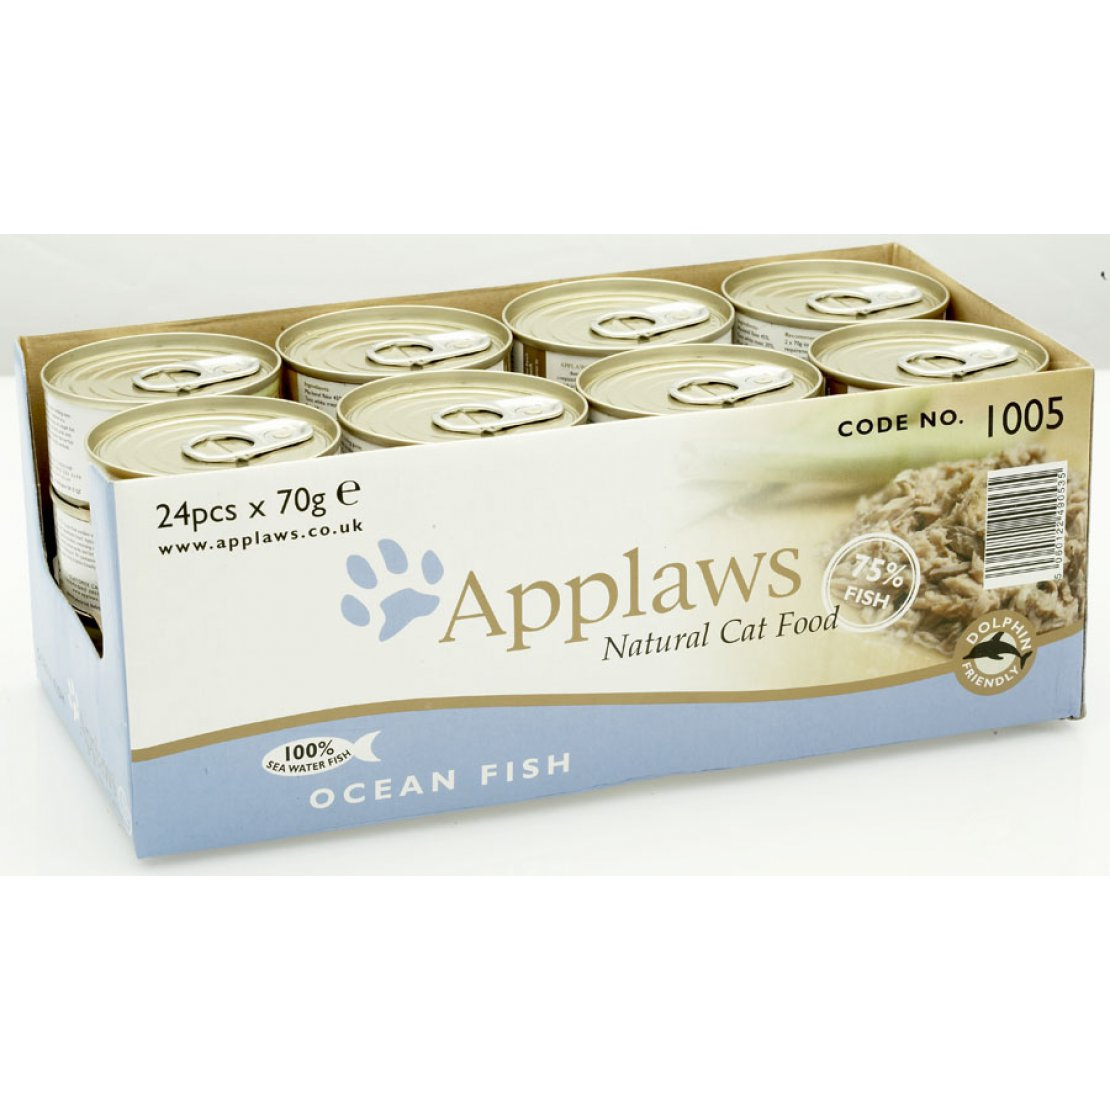 ONLY AVAILABLE FOR LOCAL DELIVERY. Applaws Cat Food Can. Ocean Fish. Small